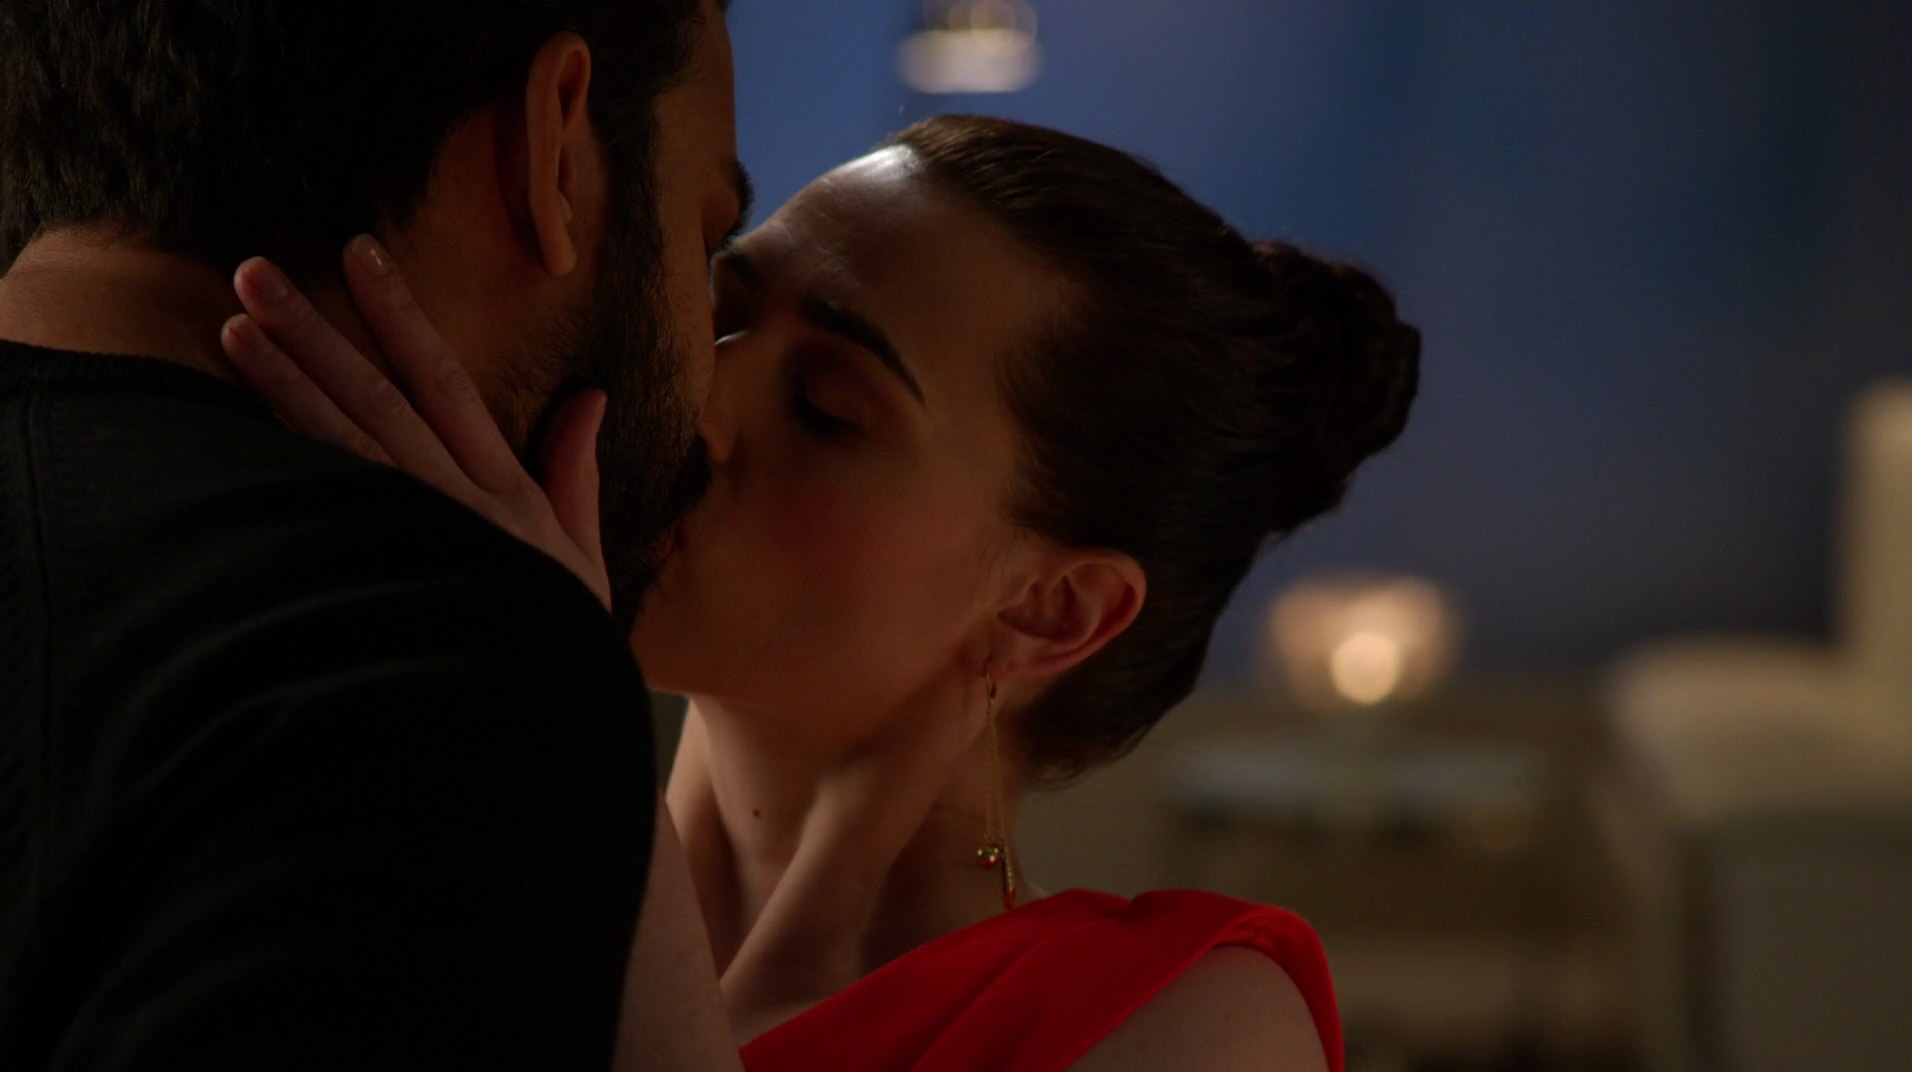 Lena_Luthor_and_Jack_Spheer_kiss.png